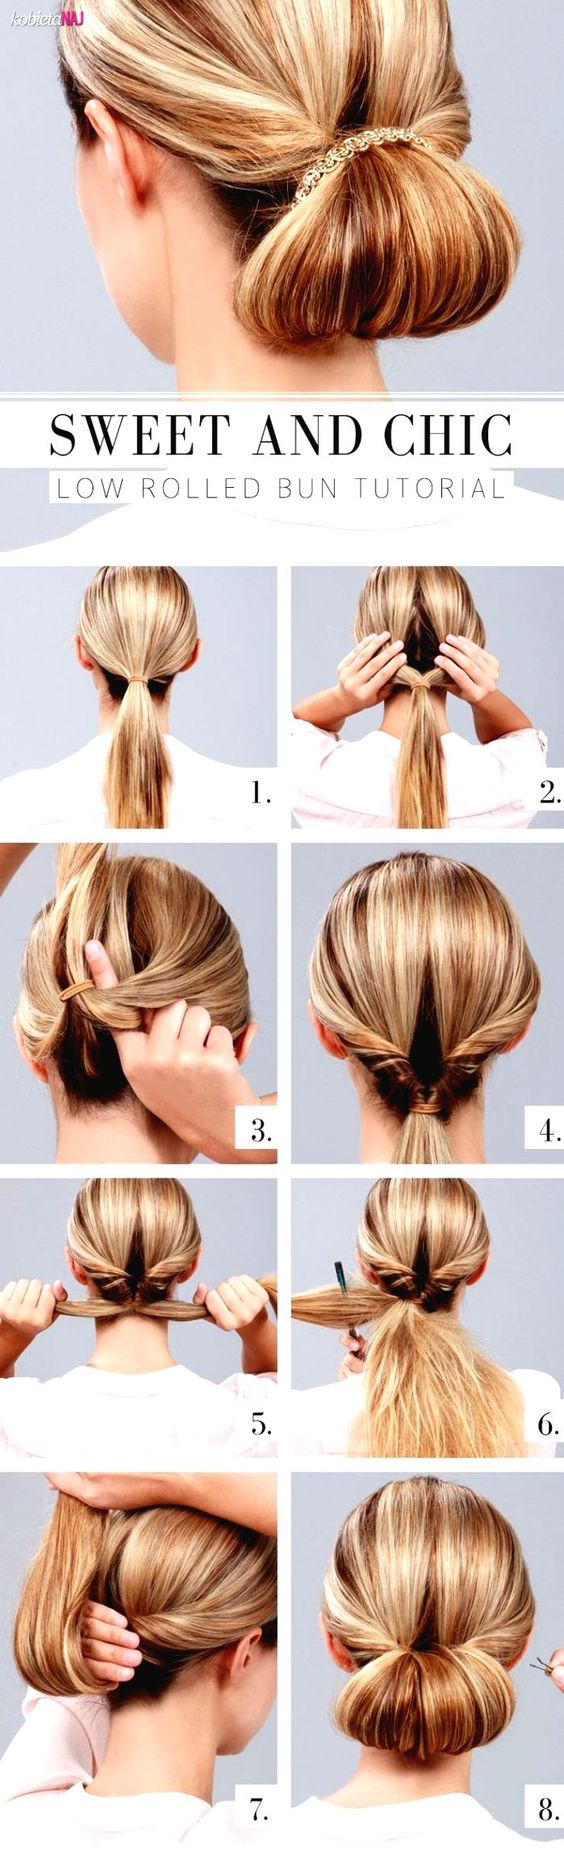 Easy Hairstyles For Summer - Modern Magazin - Art, design, DIY projects…